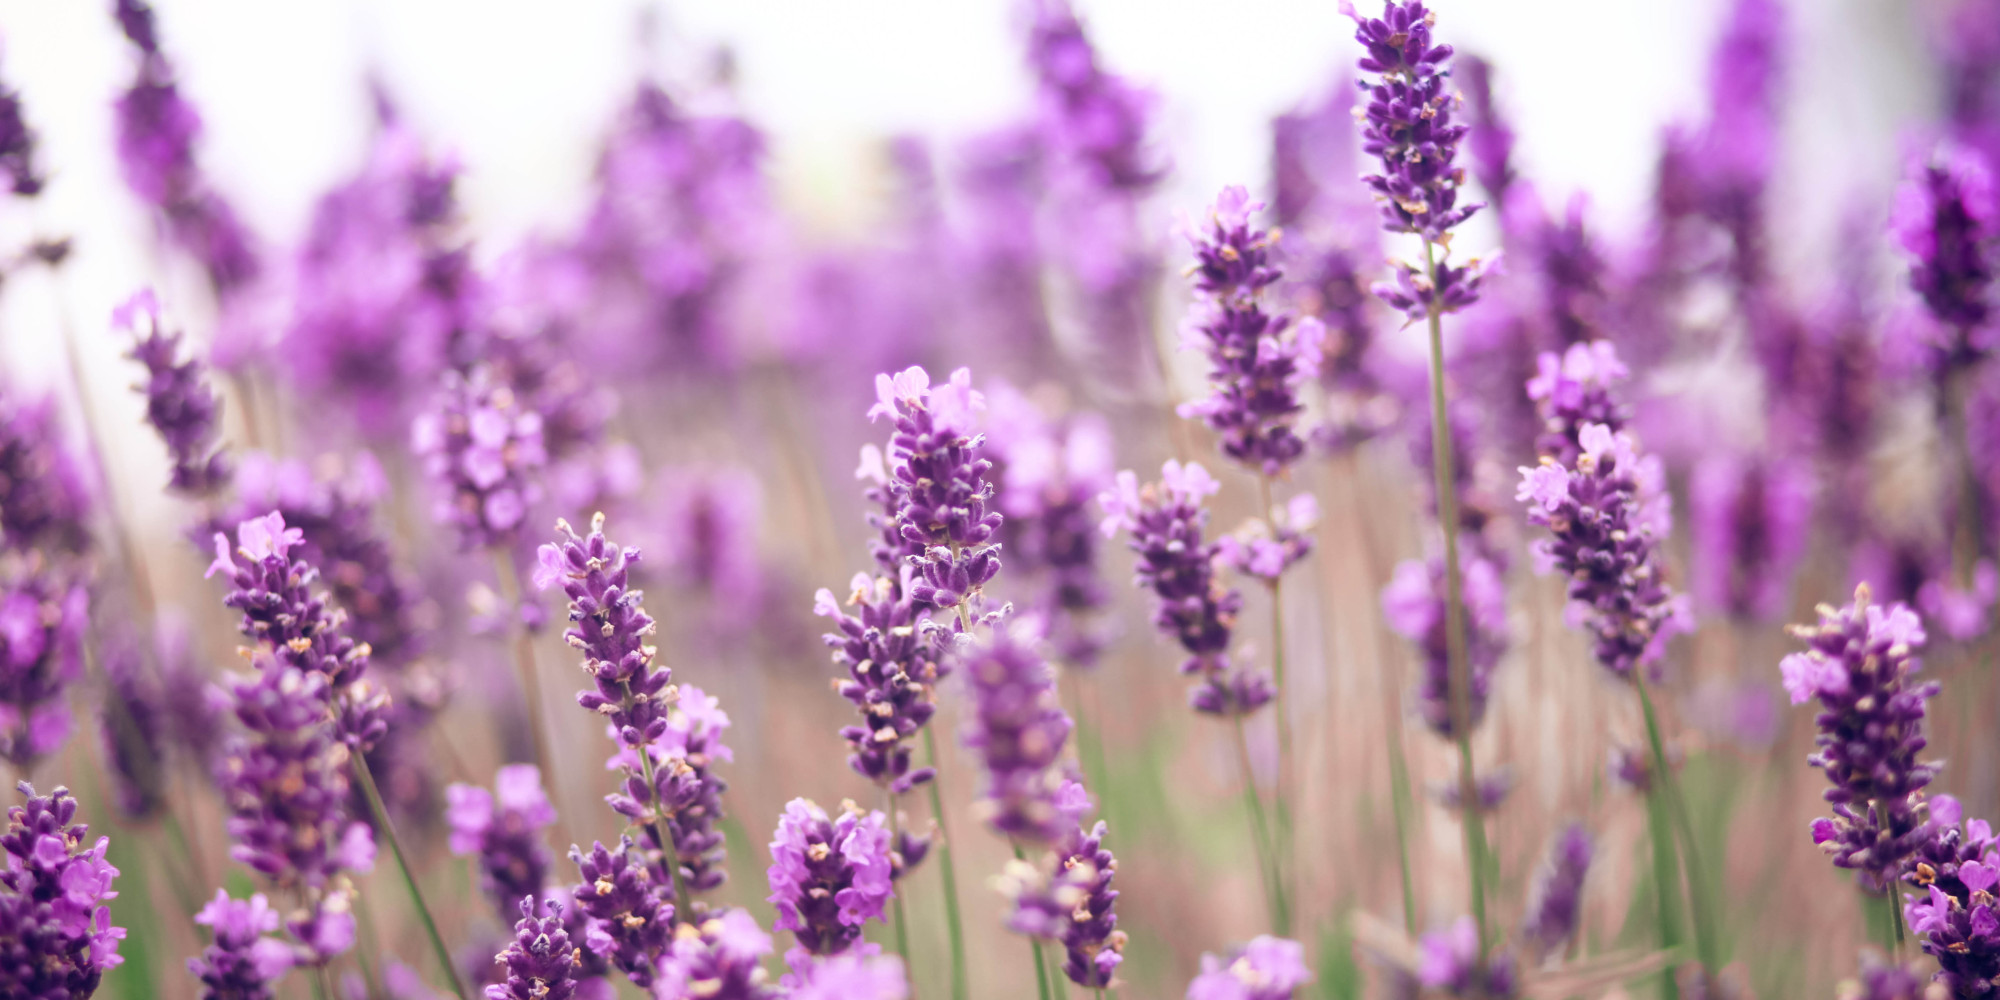 Http Www Huffingtonpost Com 2015 05 22 Lavender Beauty Benefits N 7416956 Html